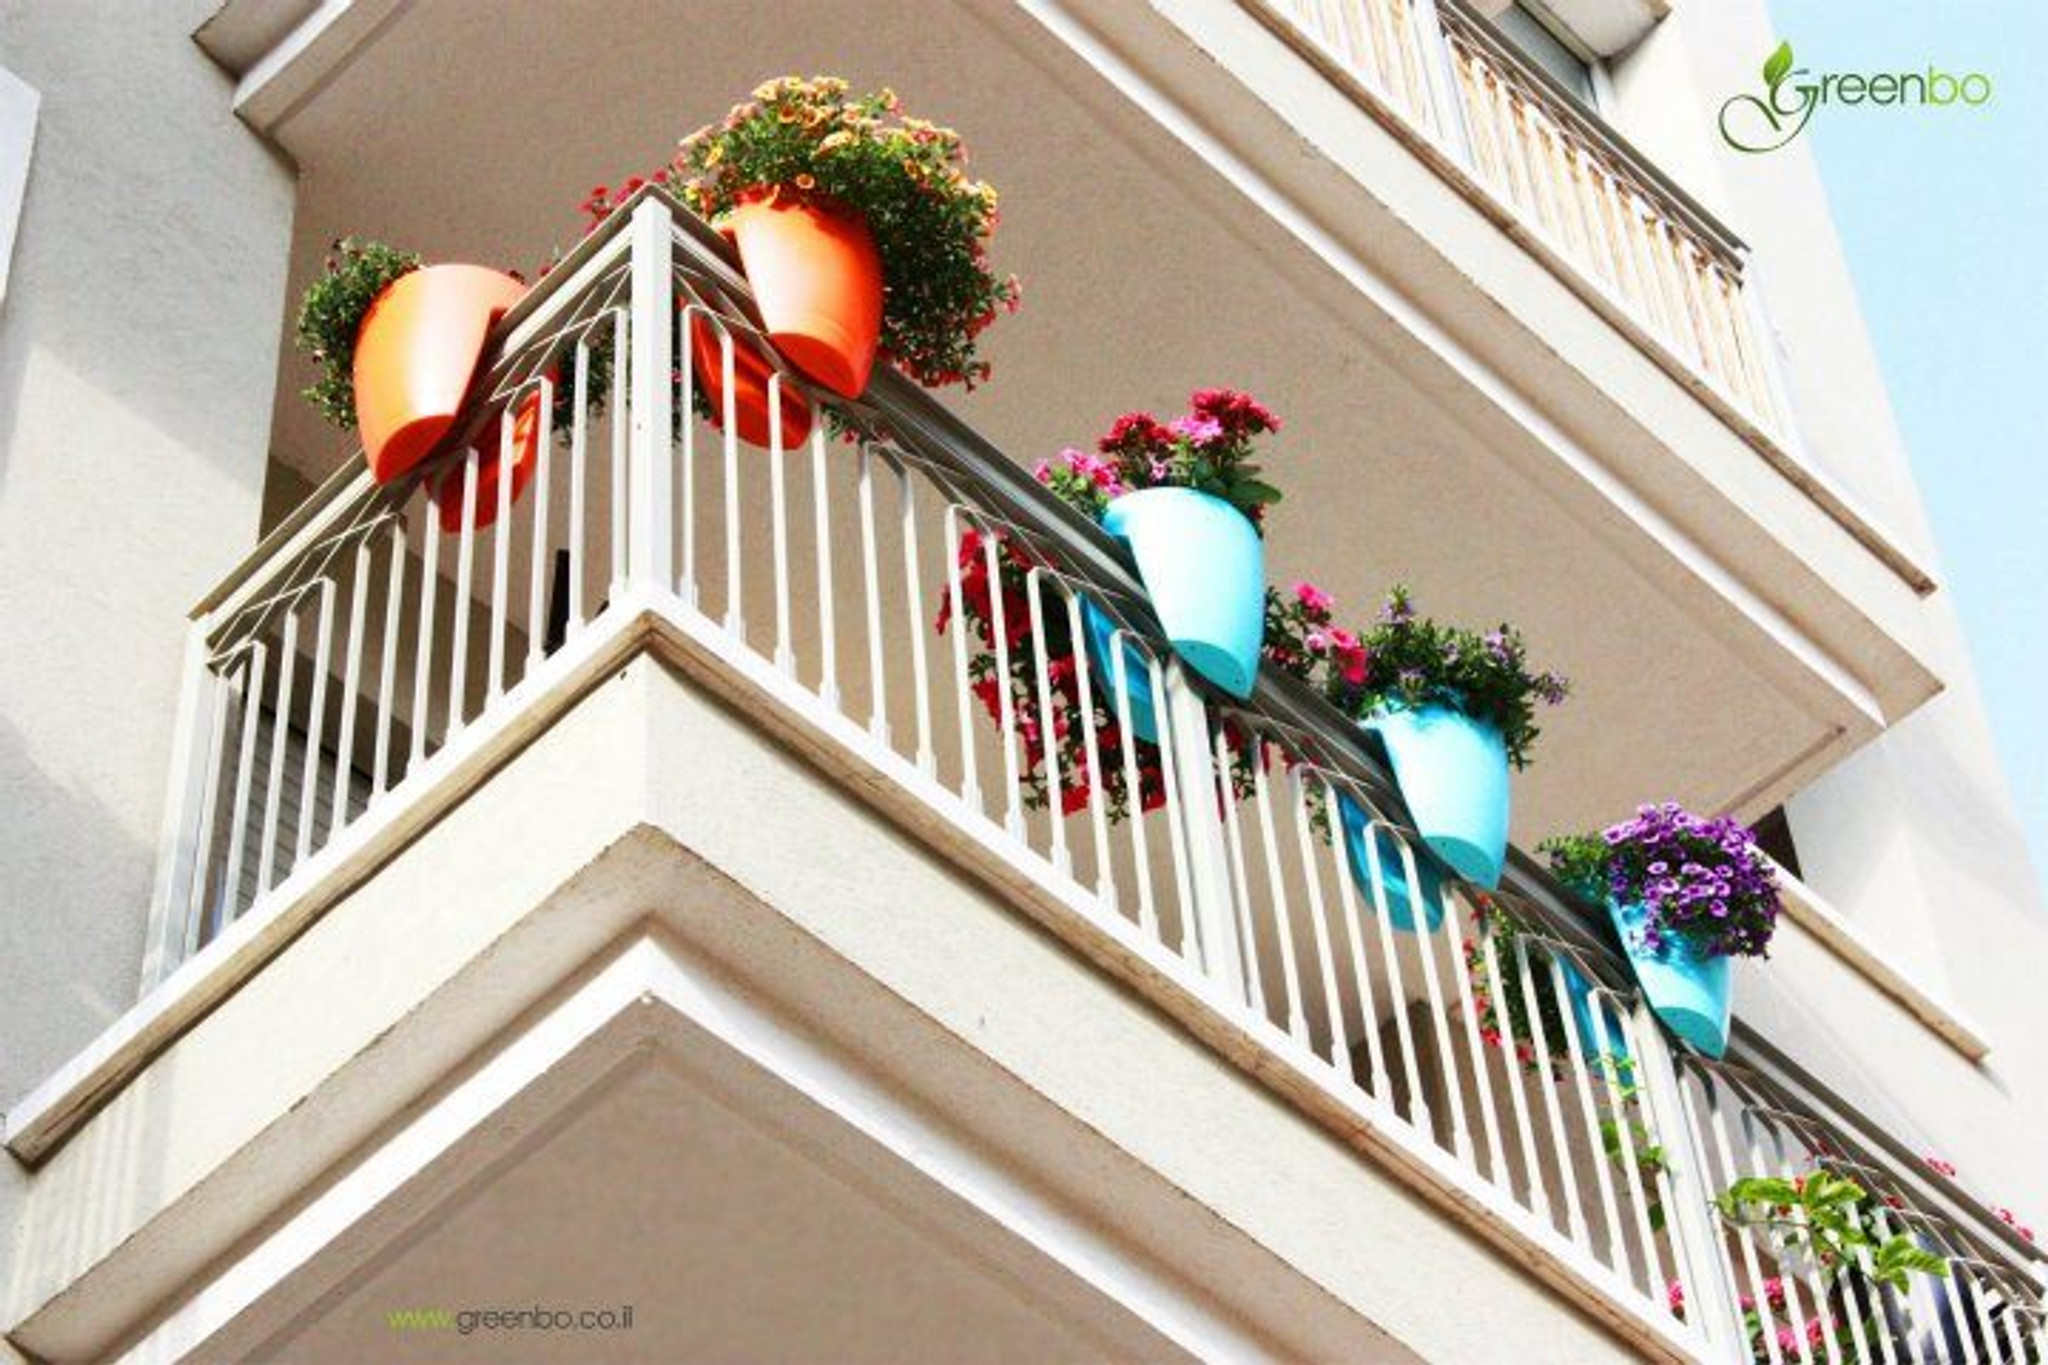 Greenbo railing planters on balcony.